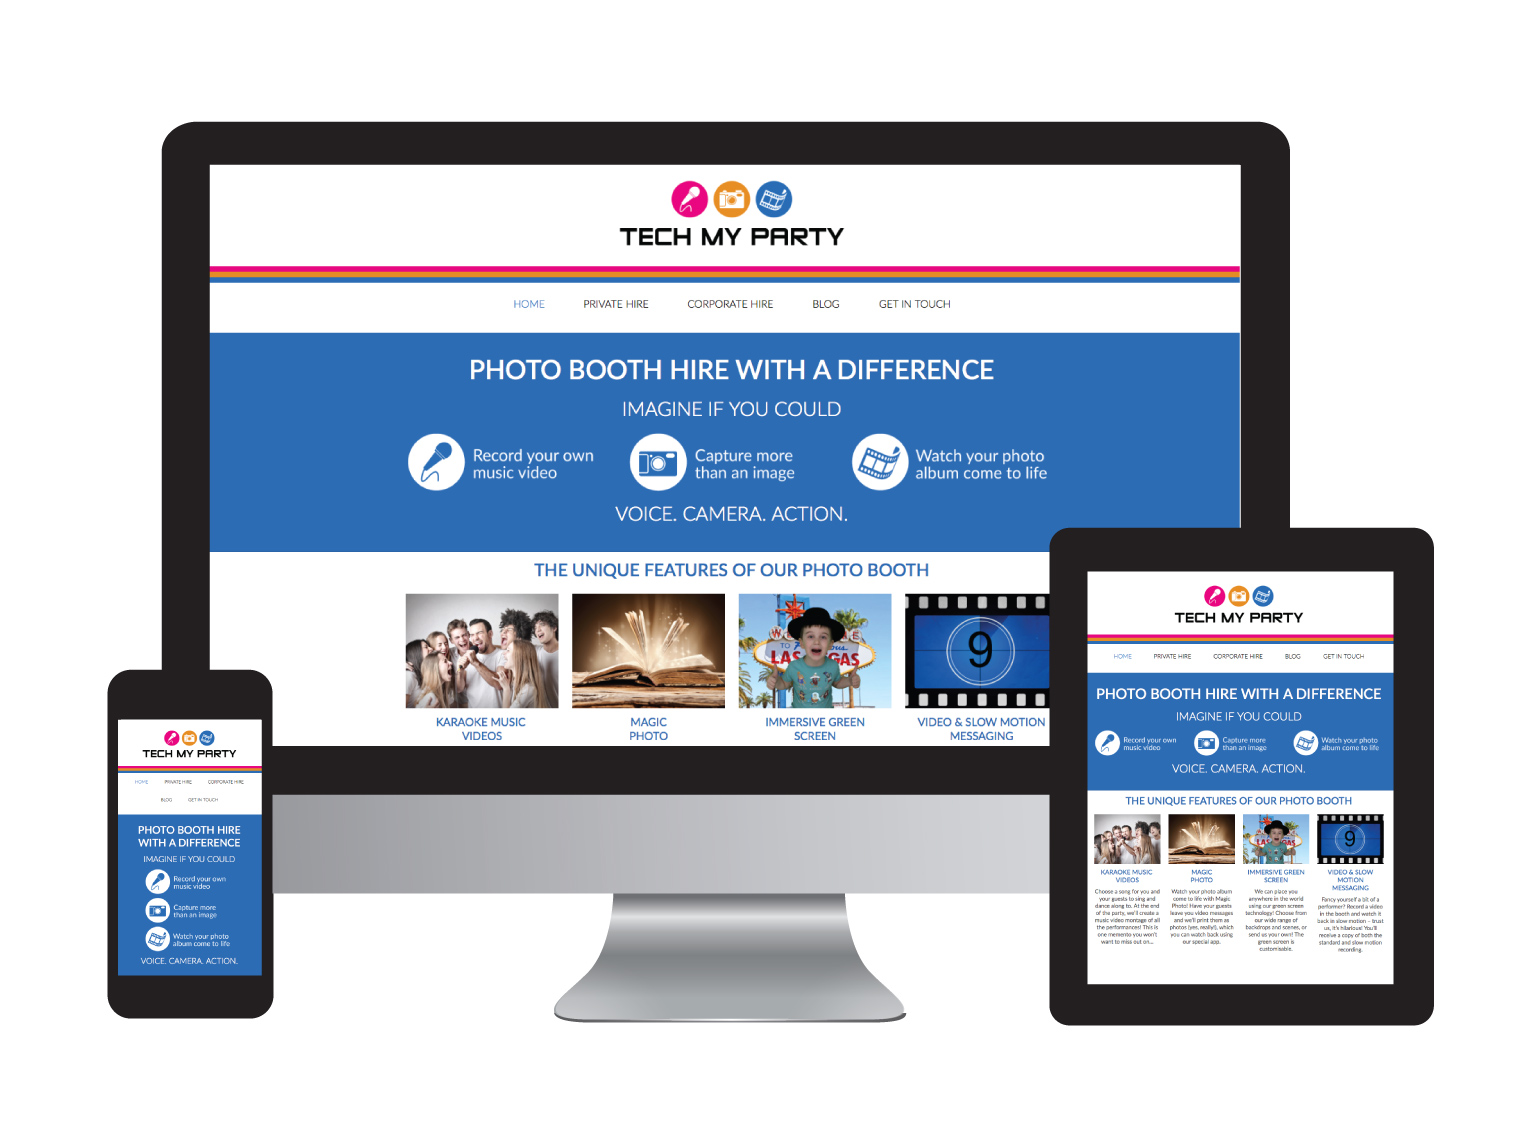 Tech My Party - Design in the Shires   Web Design Worcestershire   Graphic Design Worcestershire   Website Designers Malvern, Worcestershire UK